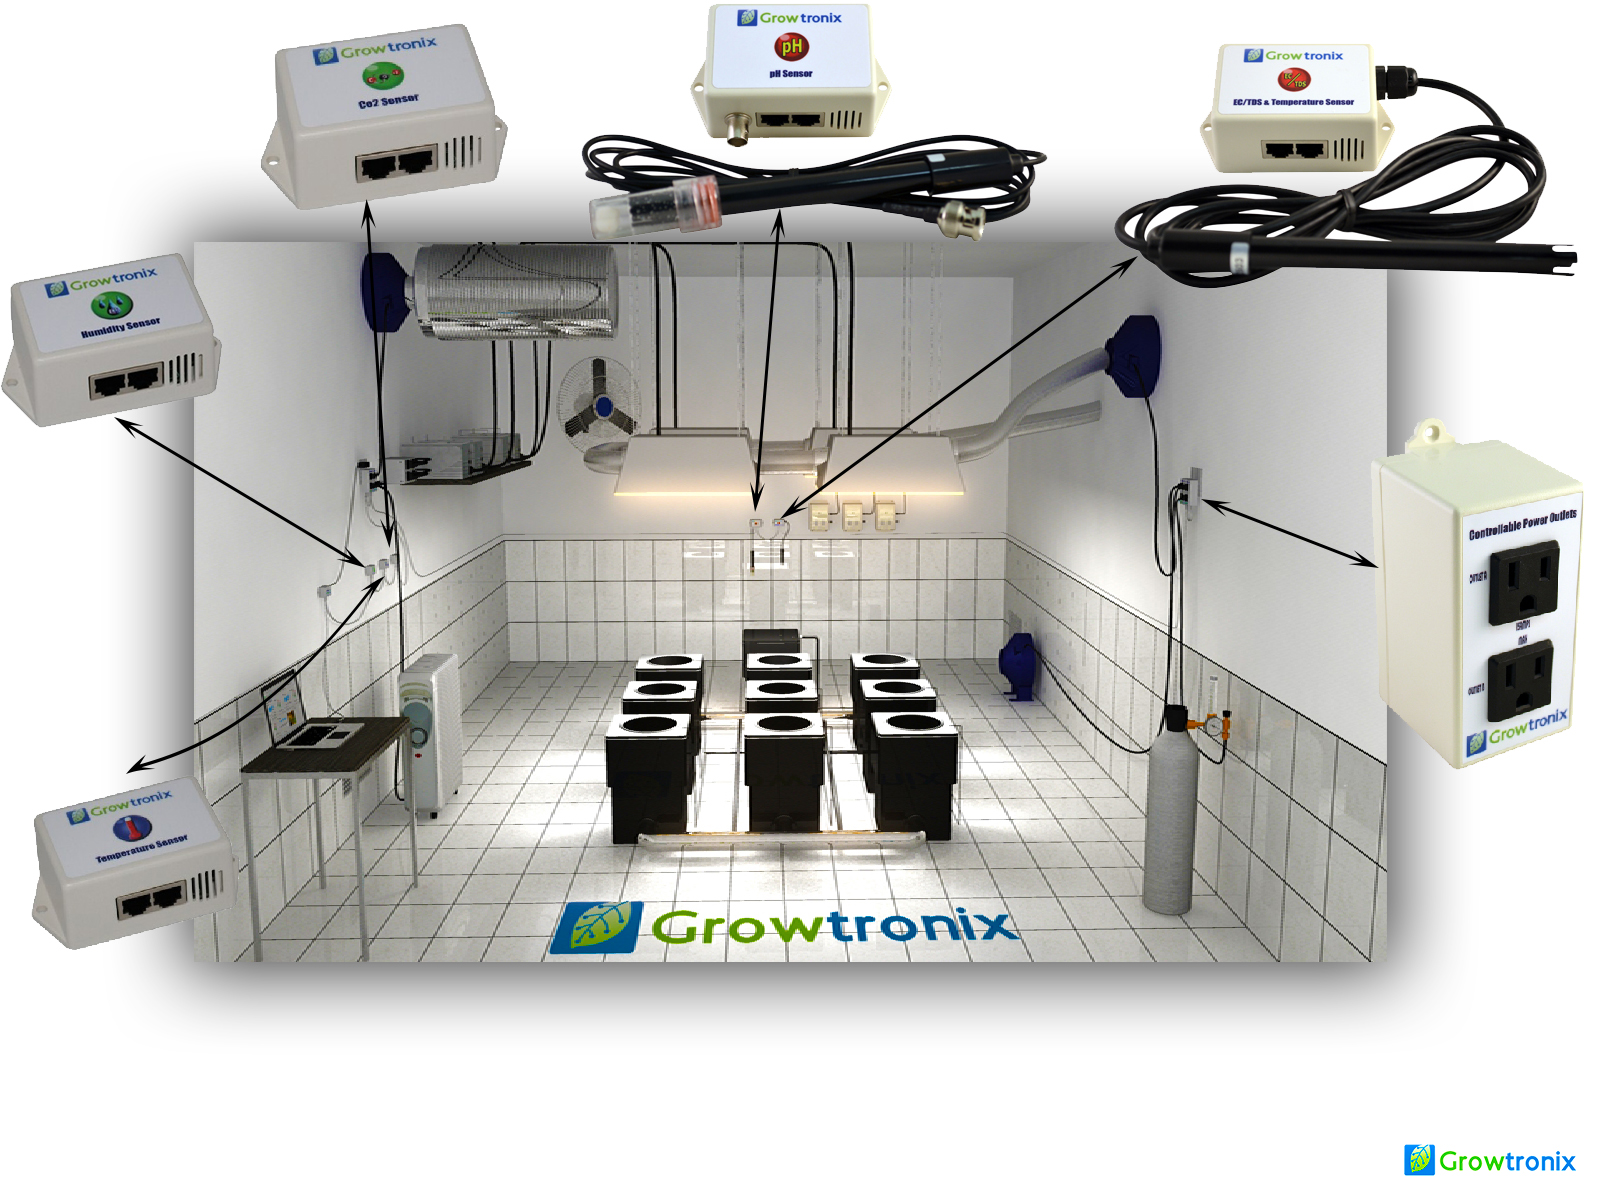 Marvelous ... The Growtronix System Is An All In One Grow Room Controller ... Part 11